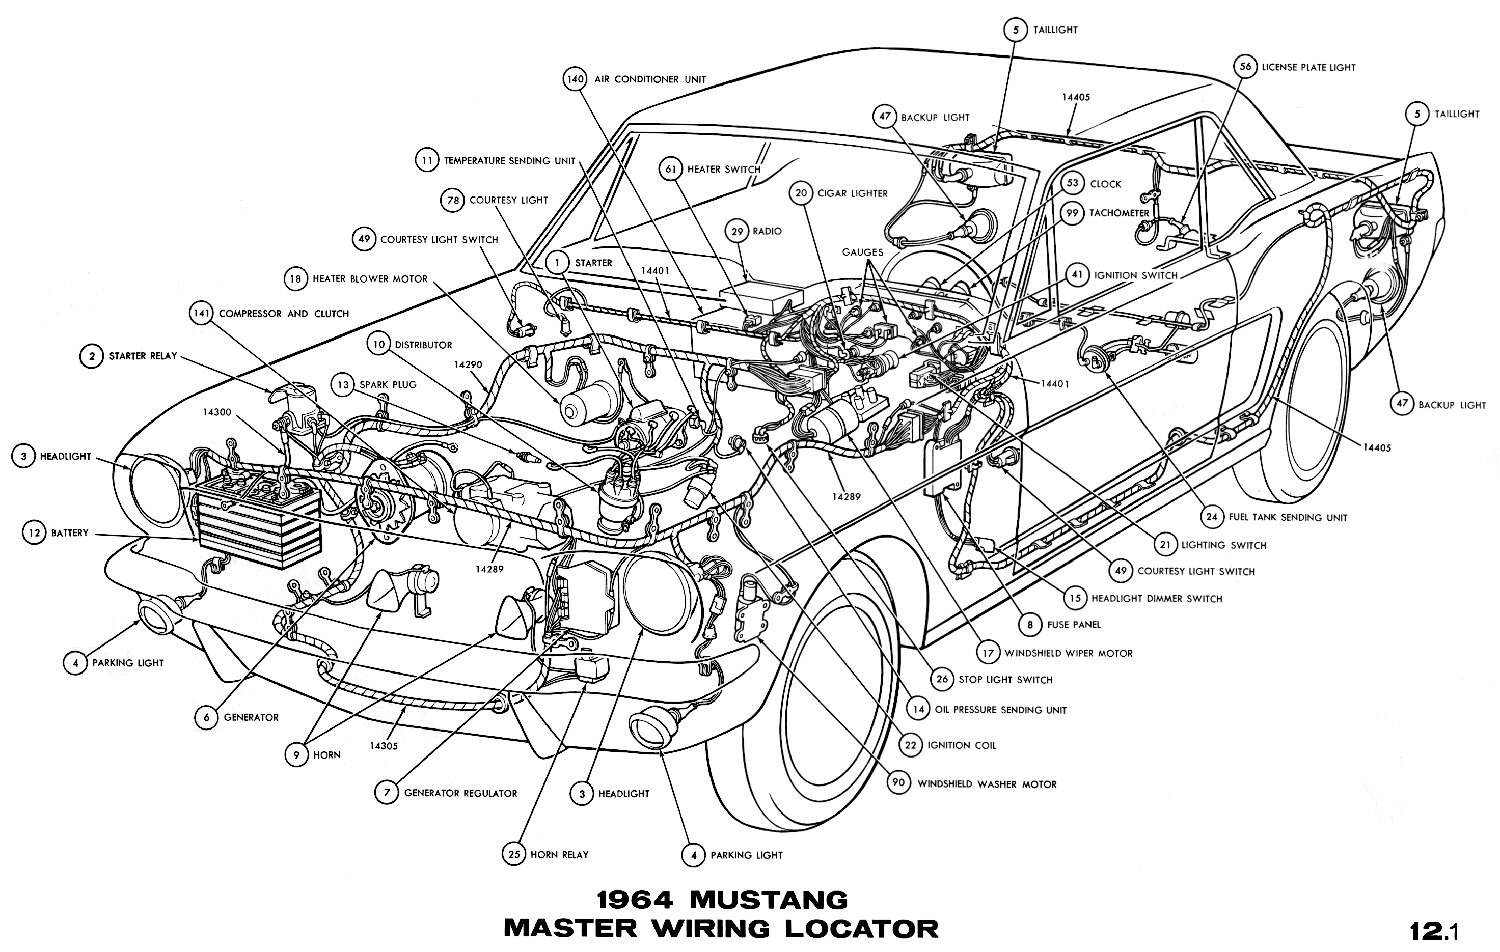 hight resolution of 1964 mustang master wiring locator